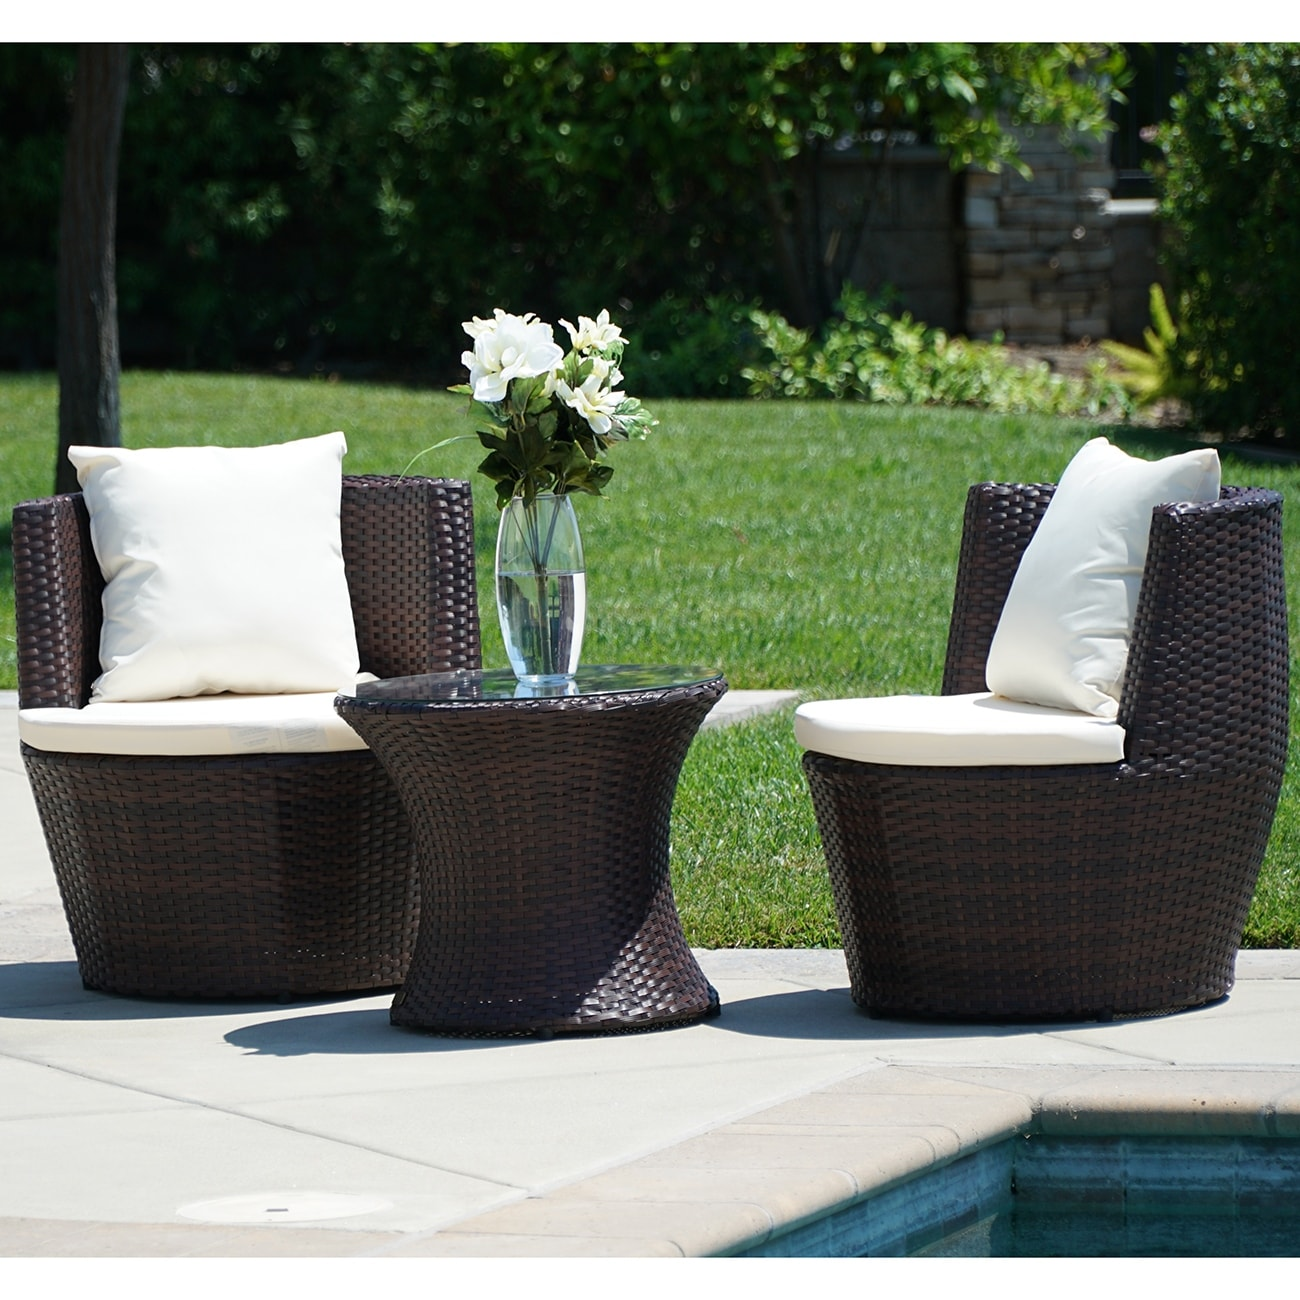 Belleze 3pc patio outdoor rattan patio set wicker furniture outdoor set hour glass table round chairs brown